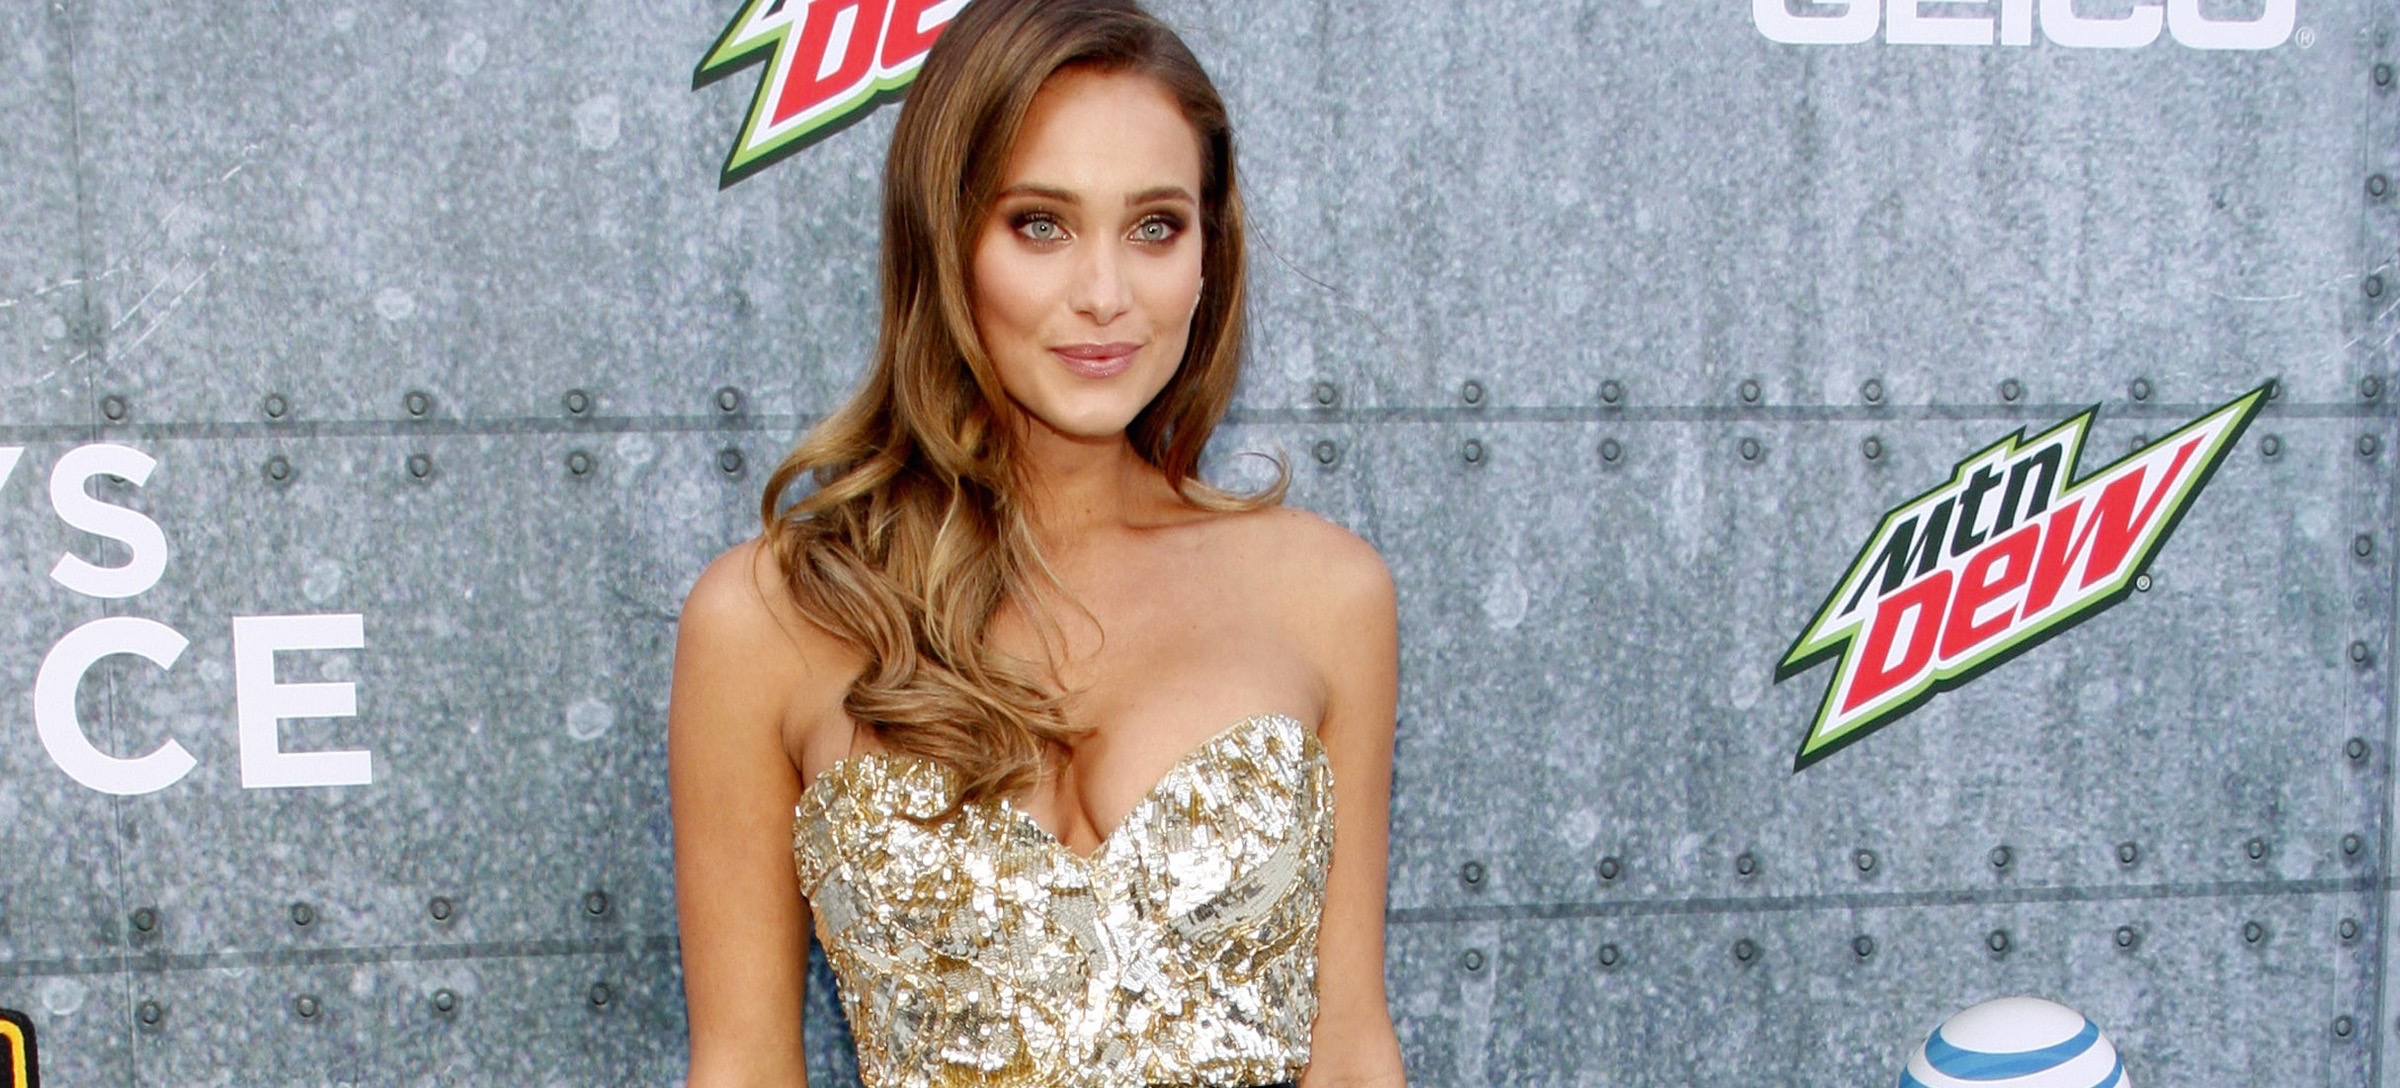 Sports Illustrated Cover Model Hannah Davis Shares Her Totally Realistic Routine